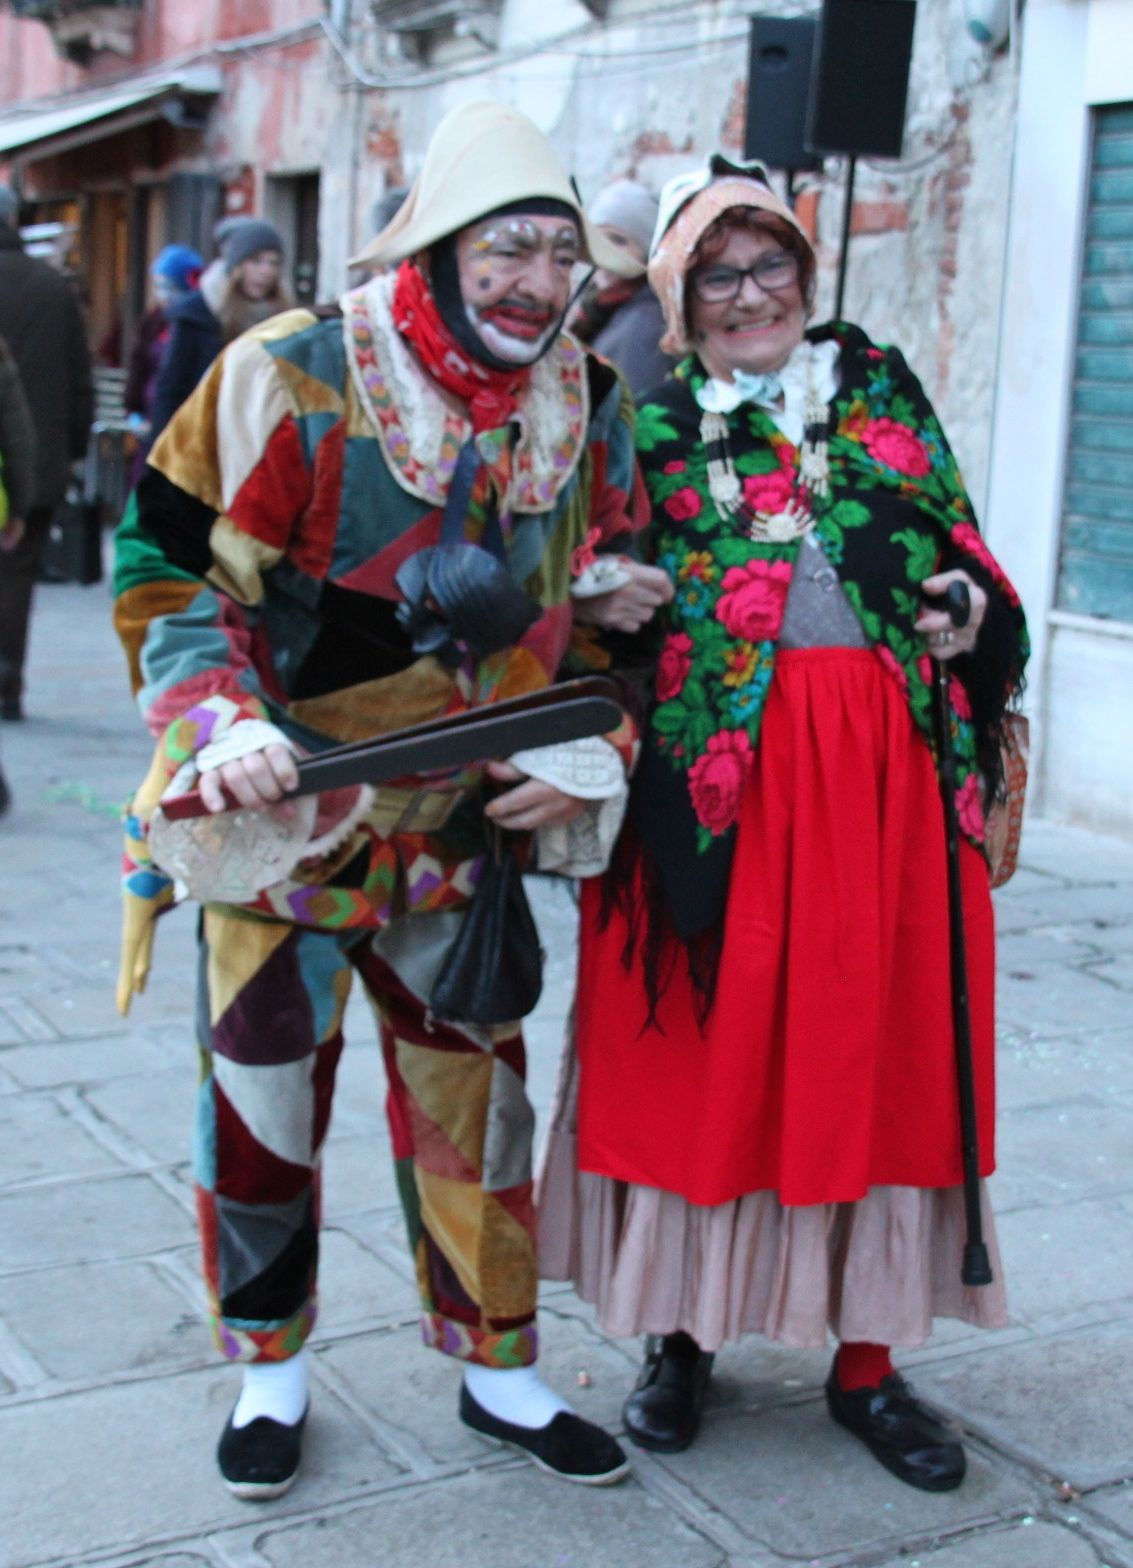 Locals dress up as characters from the Commedia dell'Arte